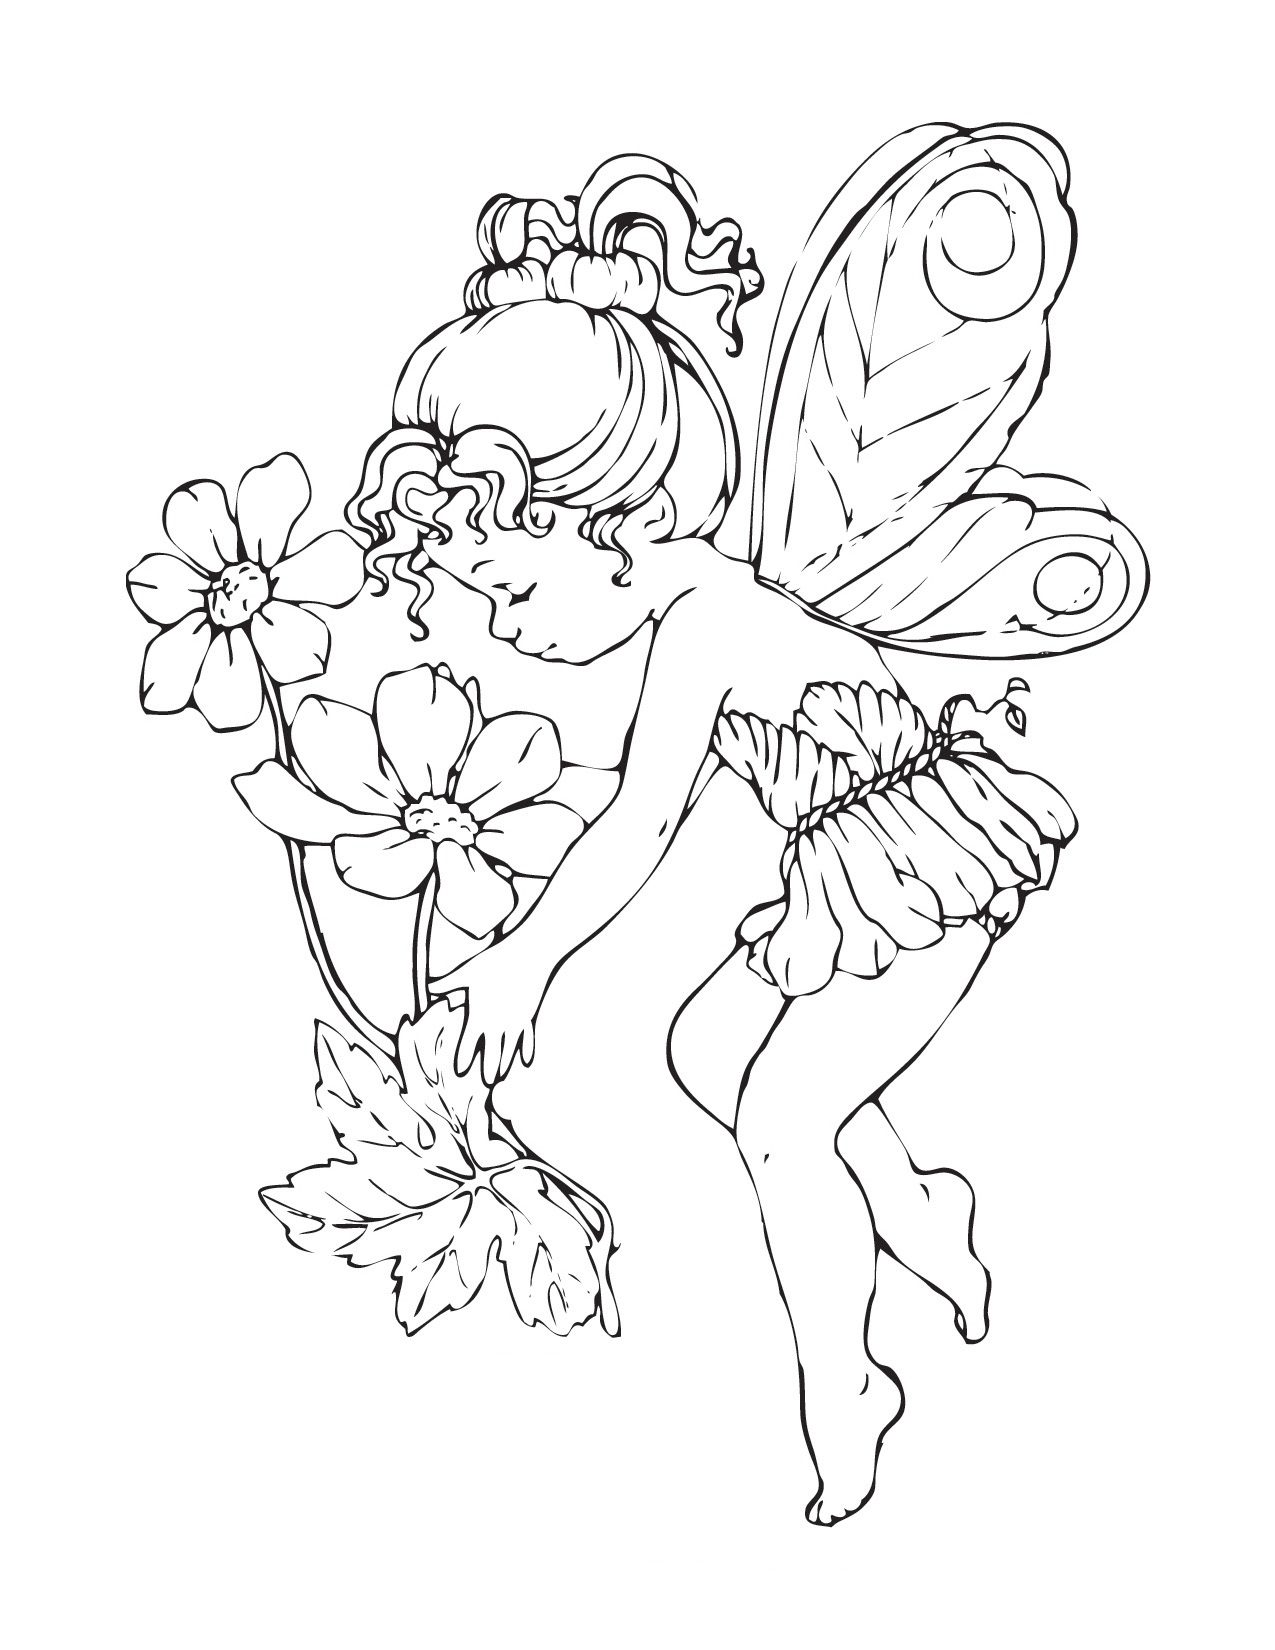 Printable Fairy Coloring Pages For Kids